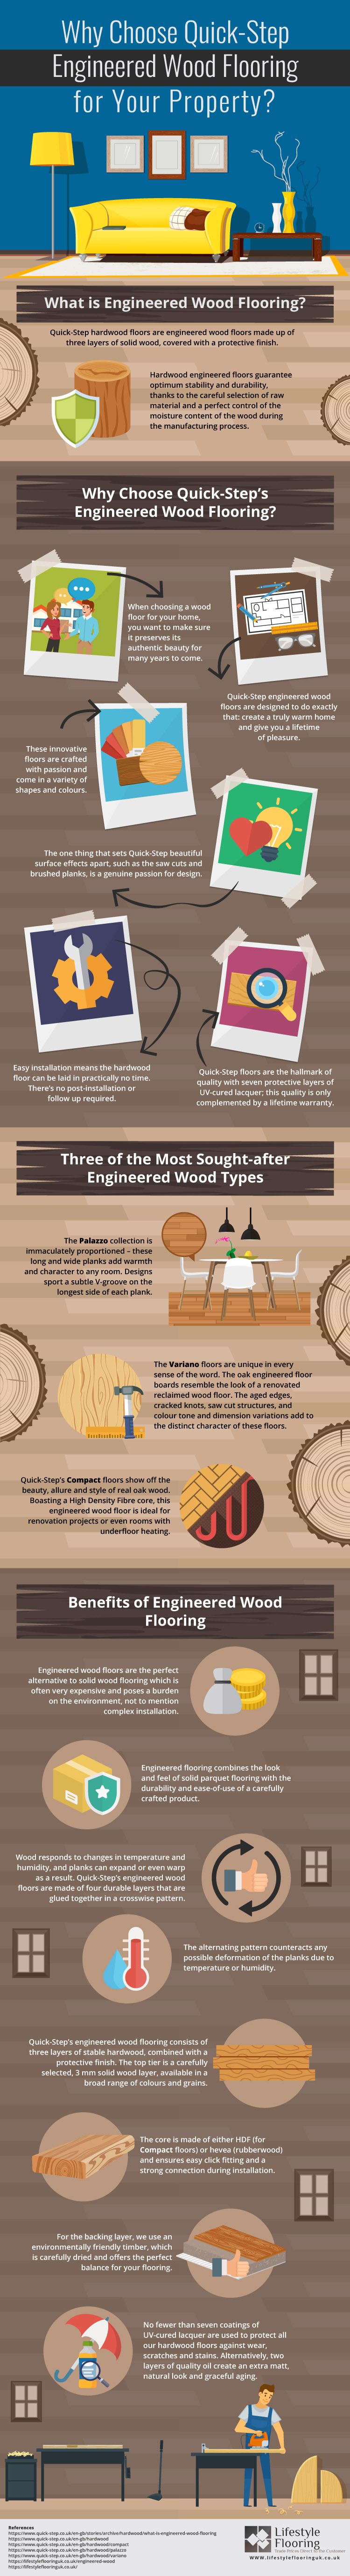 Why Choose Engineered Wood Flooring For Your Property